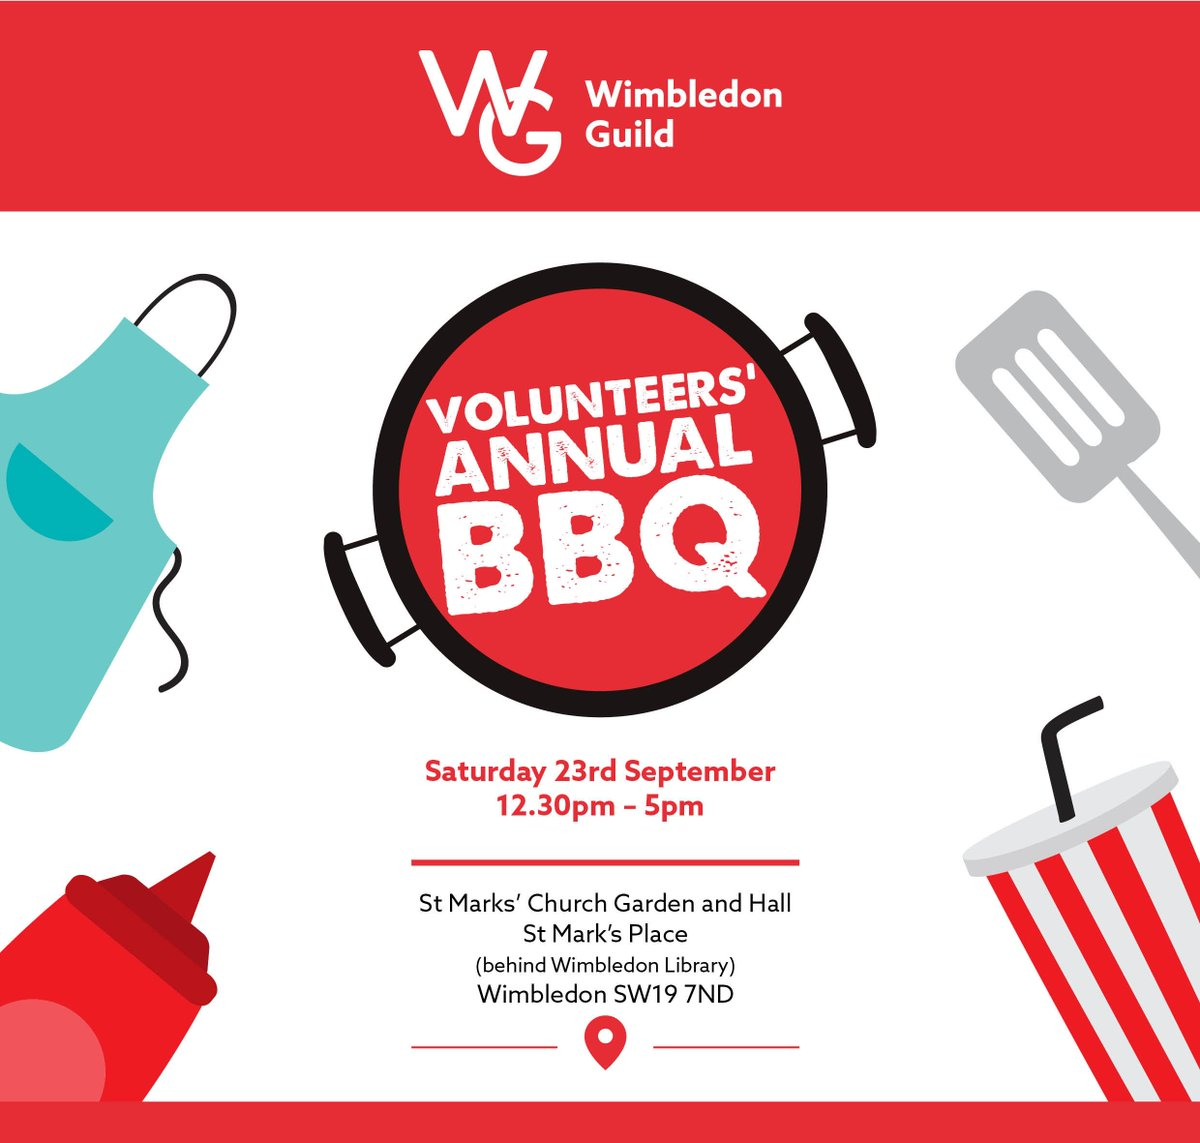 It&#39;s nearly here! It&#39;s our chance to say thank you to our wonderful #volunteers at our annual Volunteers BBQ, pop along if you can! #thanks<br>http://pic.twitter.com/YrcNmdCfgl